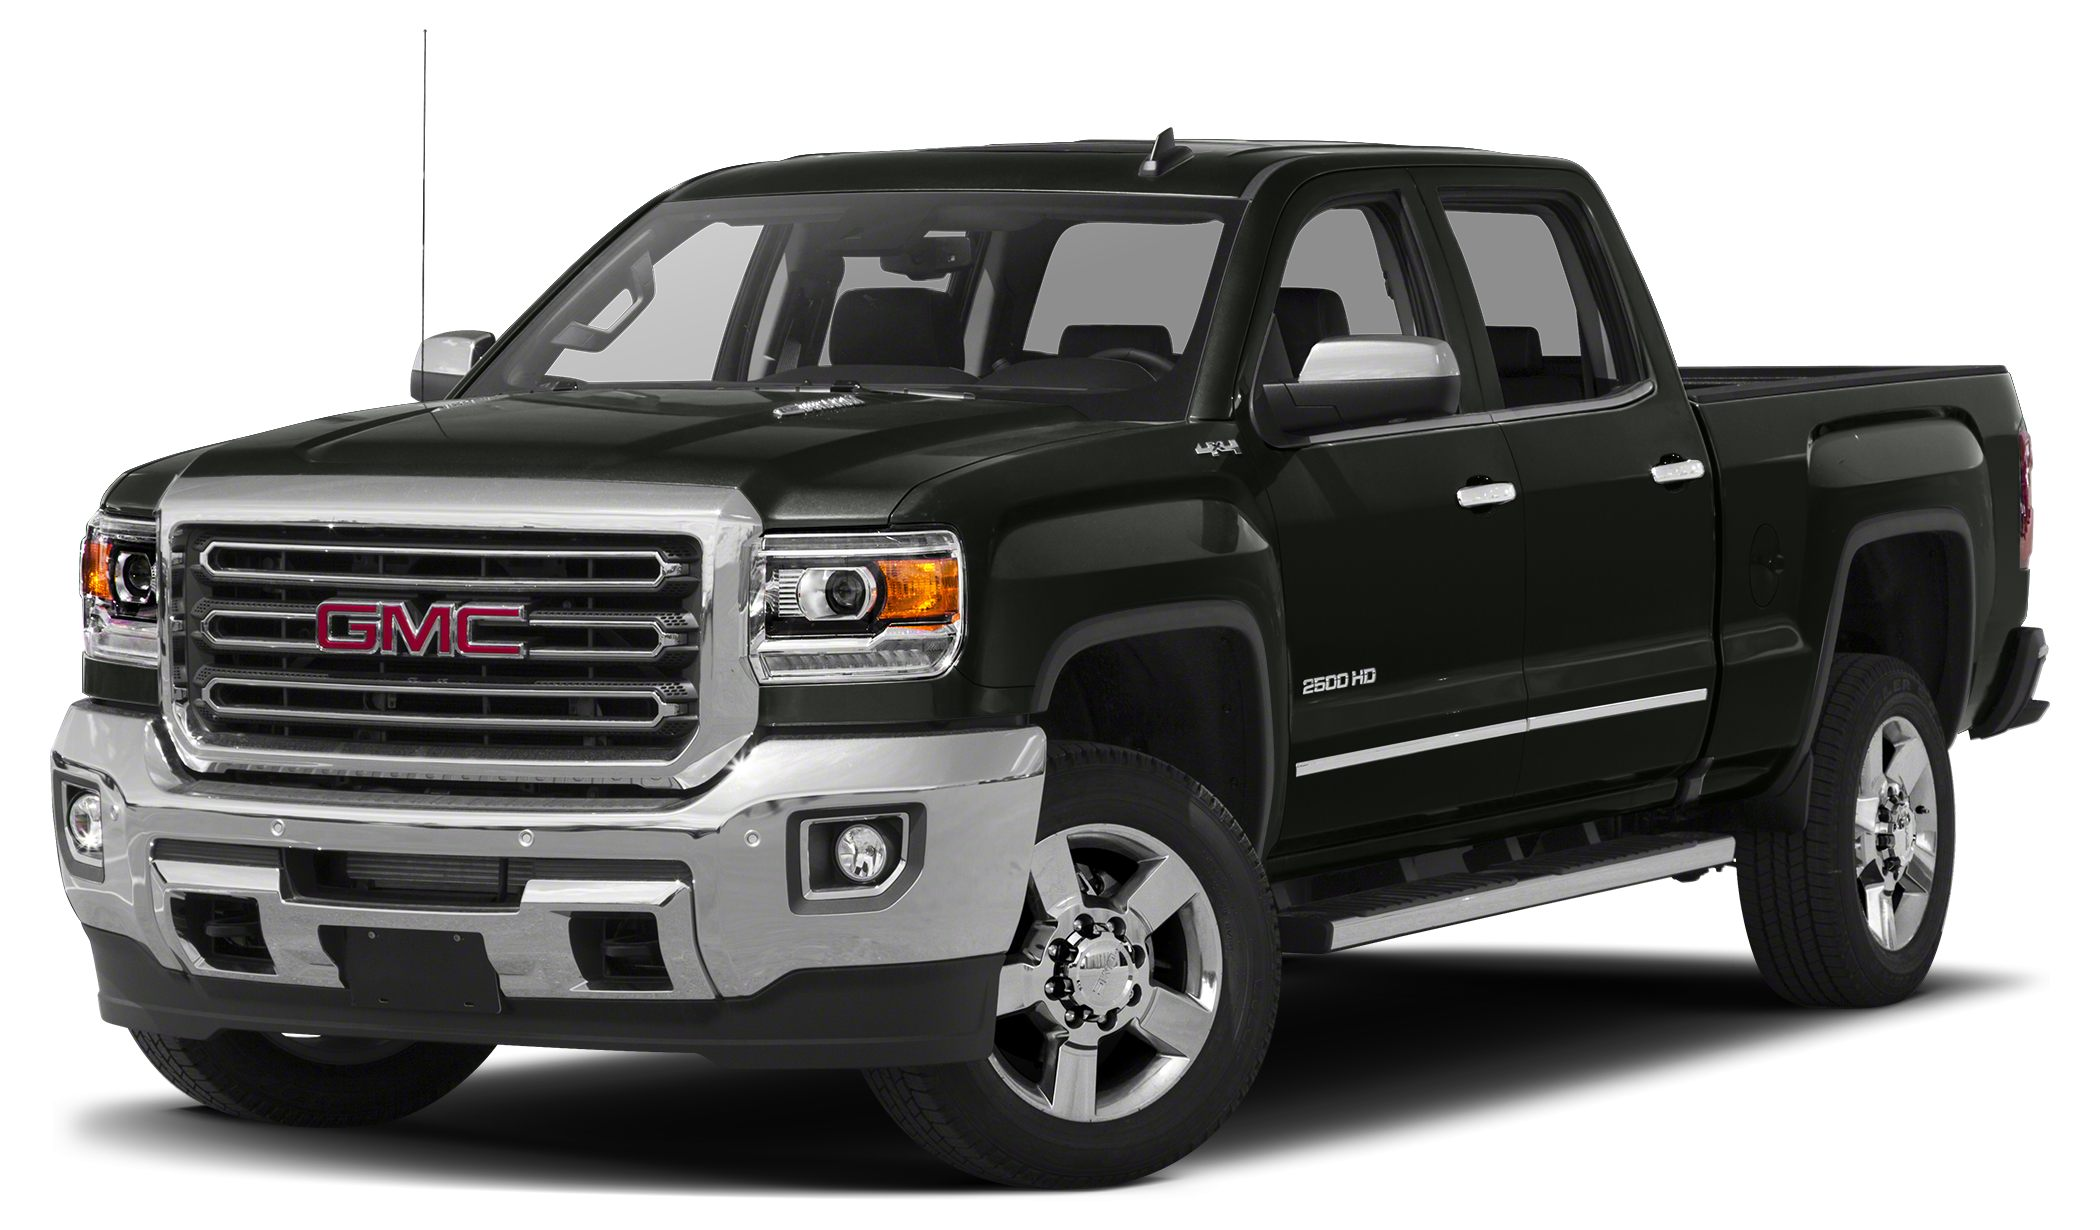 2018 GMC Sierra 2500HD SLT  REMAINDER OF FACTORY WARRANTY ACCIDENT FREE AUTOCHECKALL-TER